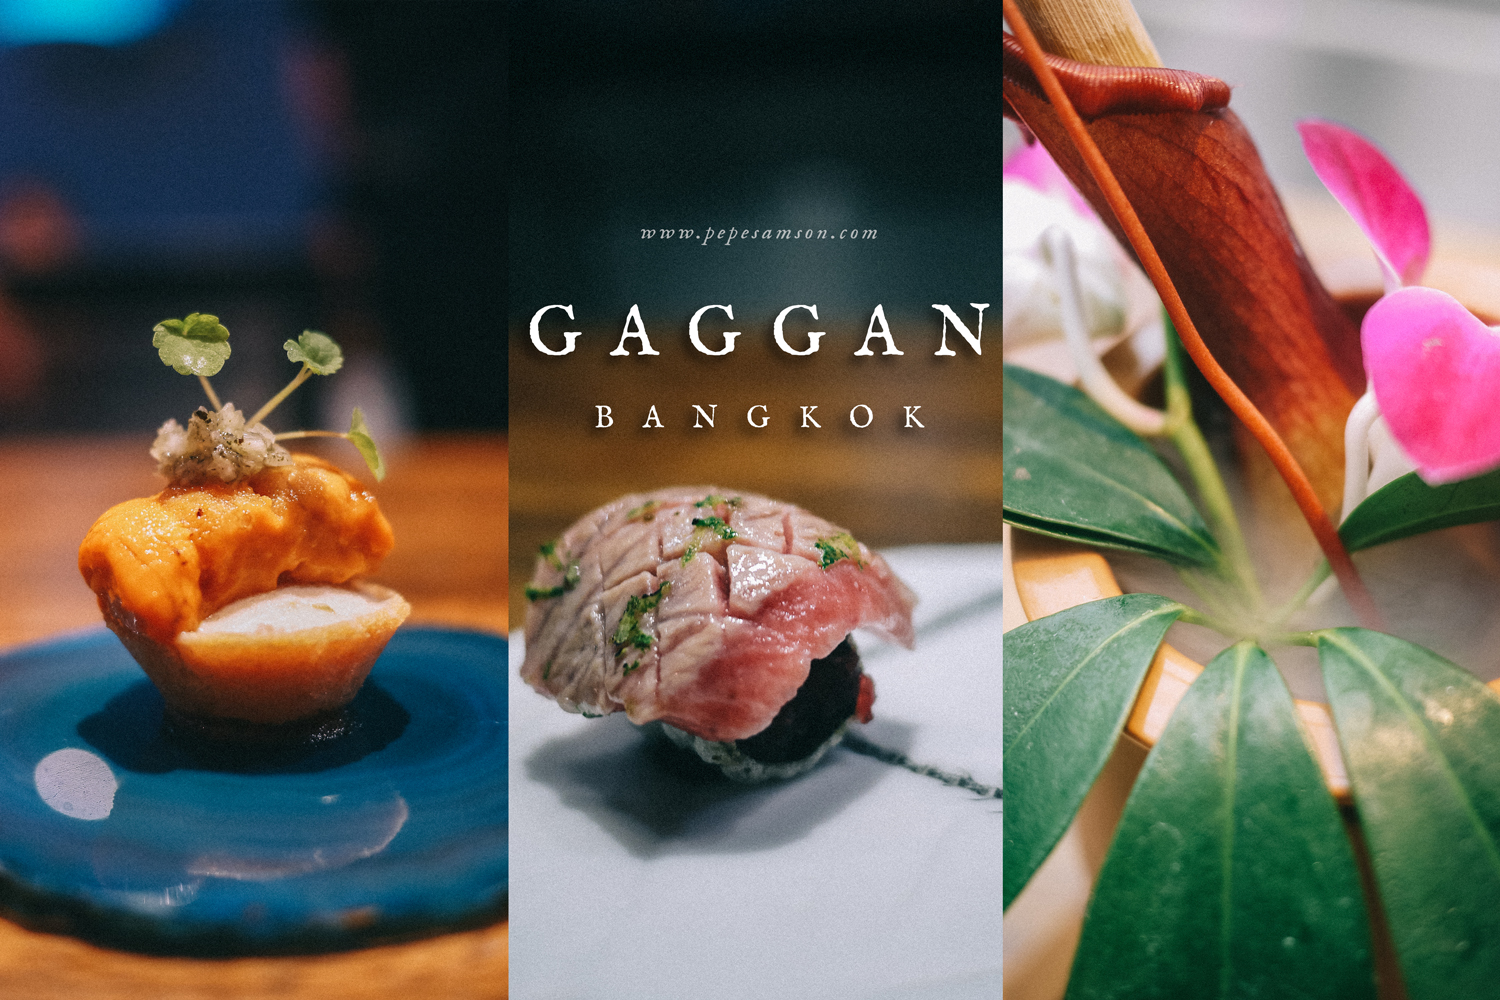 gaggan bangkok world's 50 best